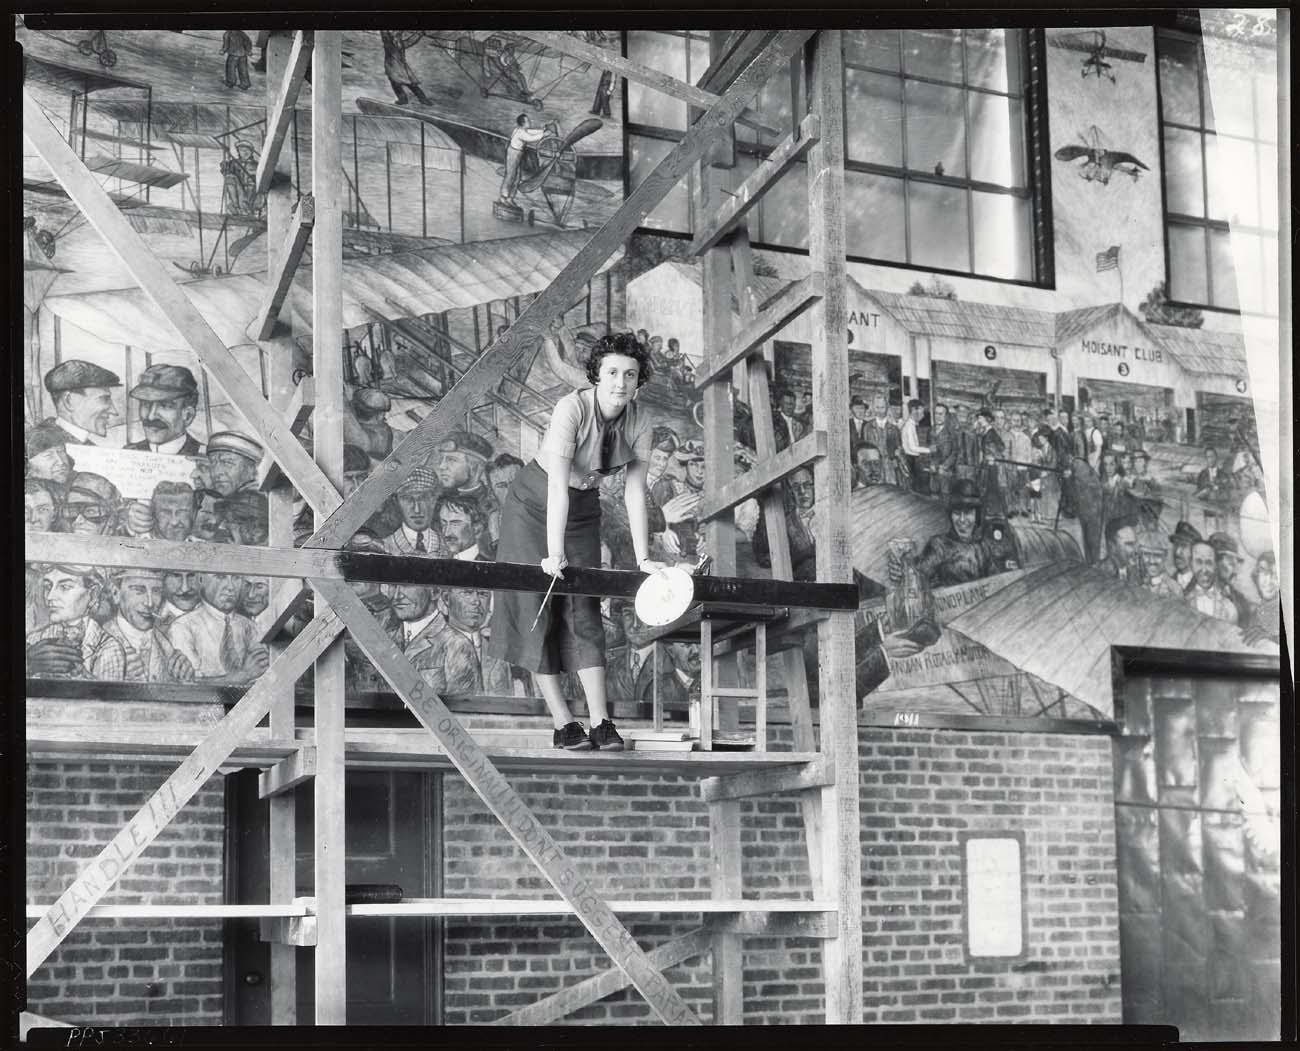 http://upload.wikimedia.org/wikipedia/commons/c/c8/Aline_H._Rhonie,_American_painter,_1909-1963,_at_work_on_aviation_mural_at_Roosevelt_Field,_Garden_City,_New_York.jpg